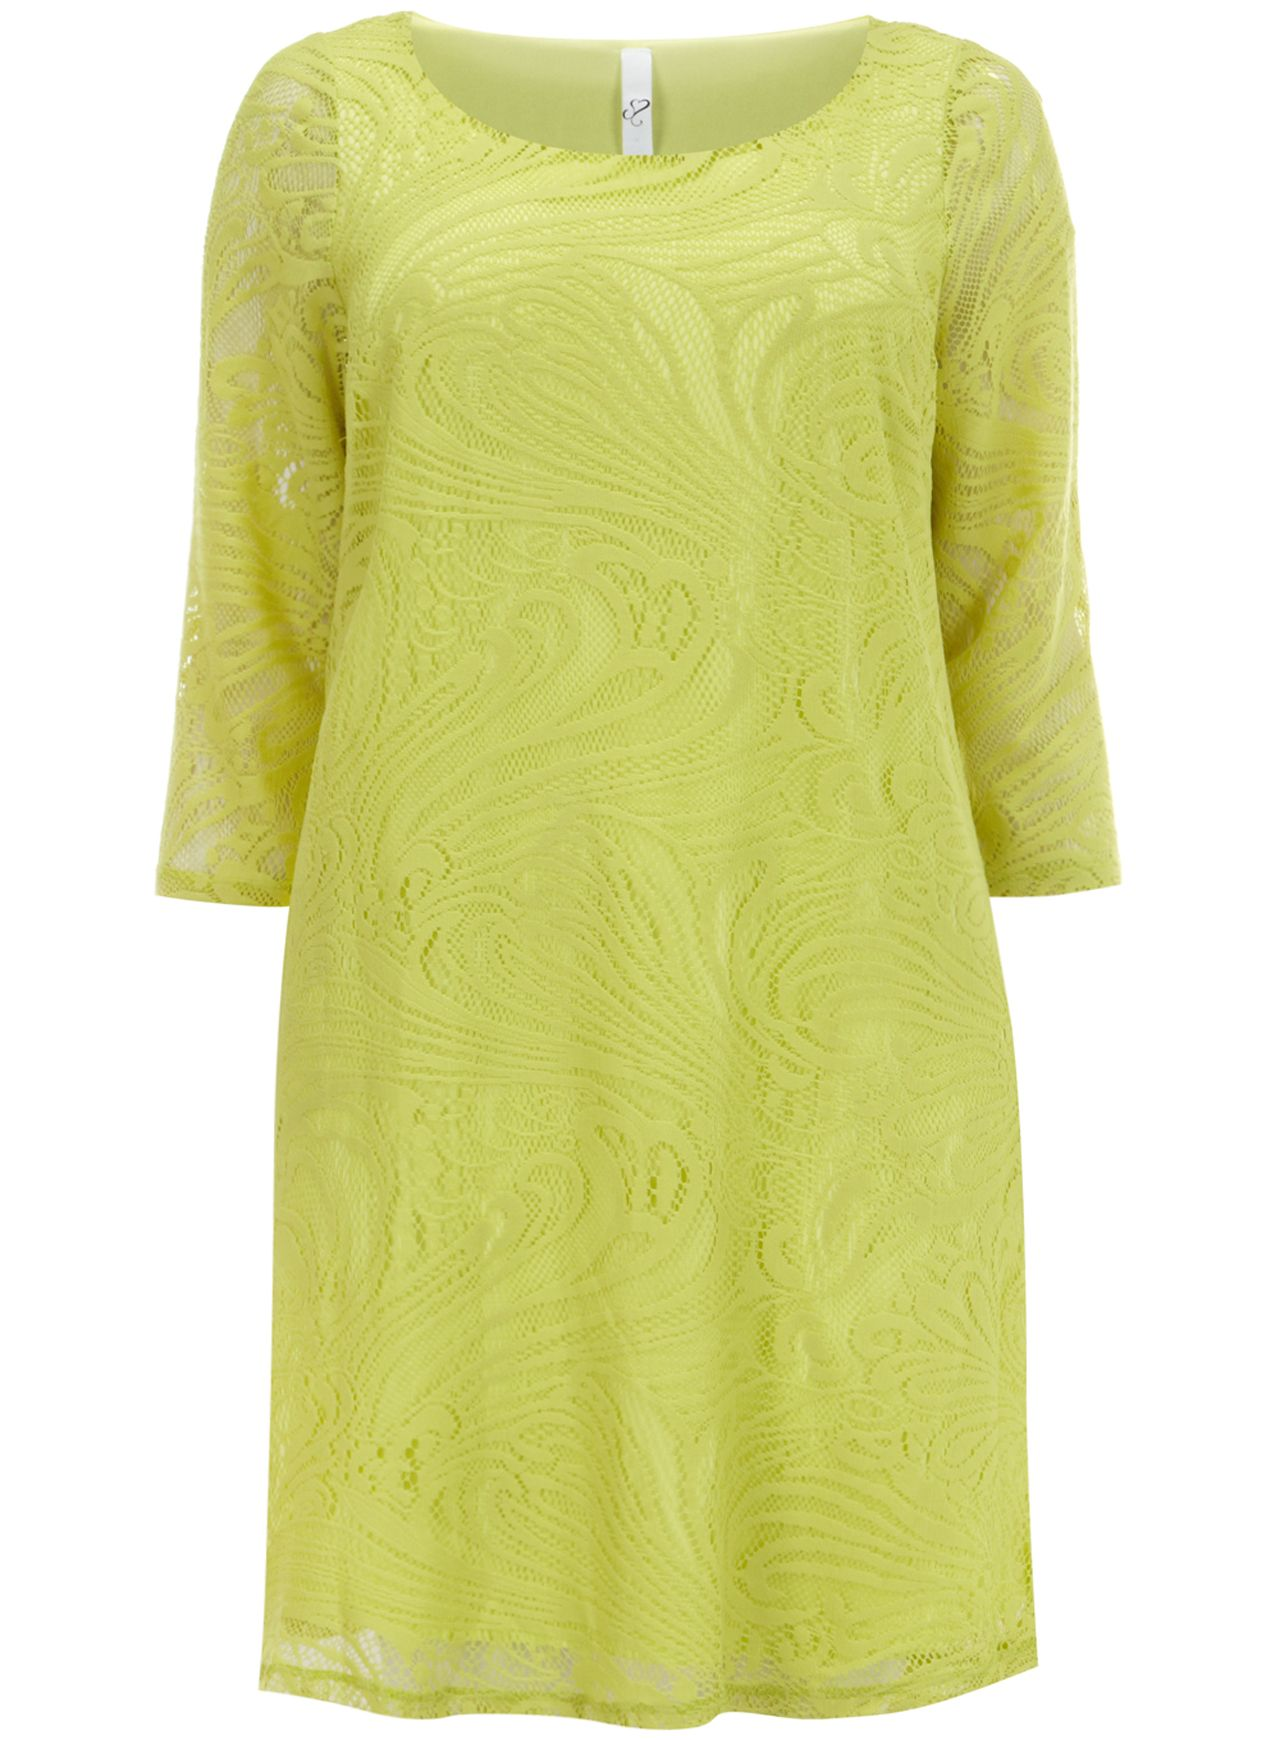 Lime lace tunic